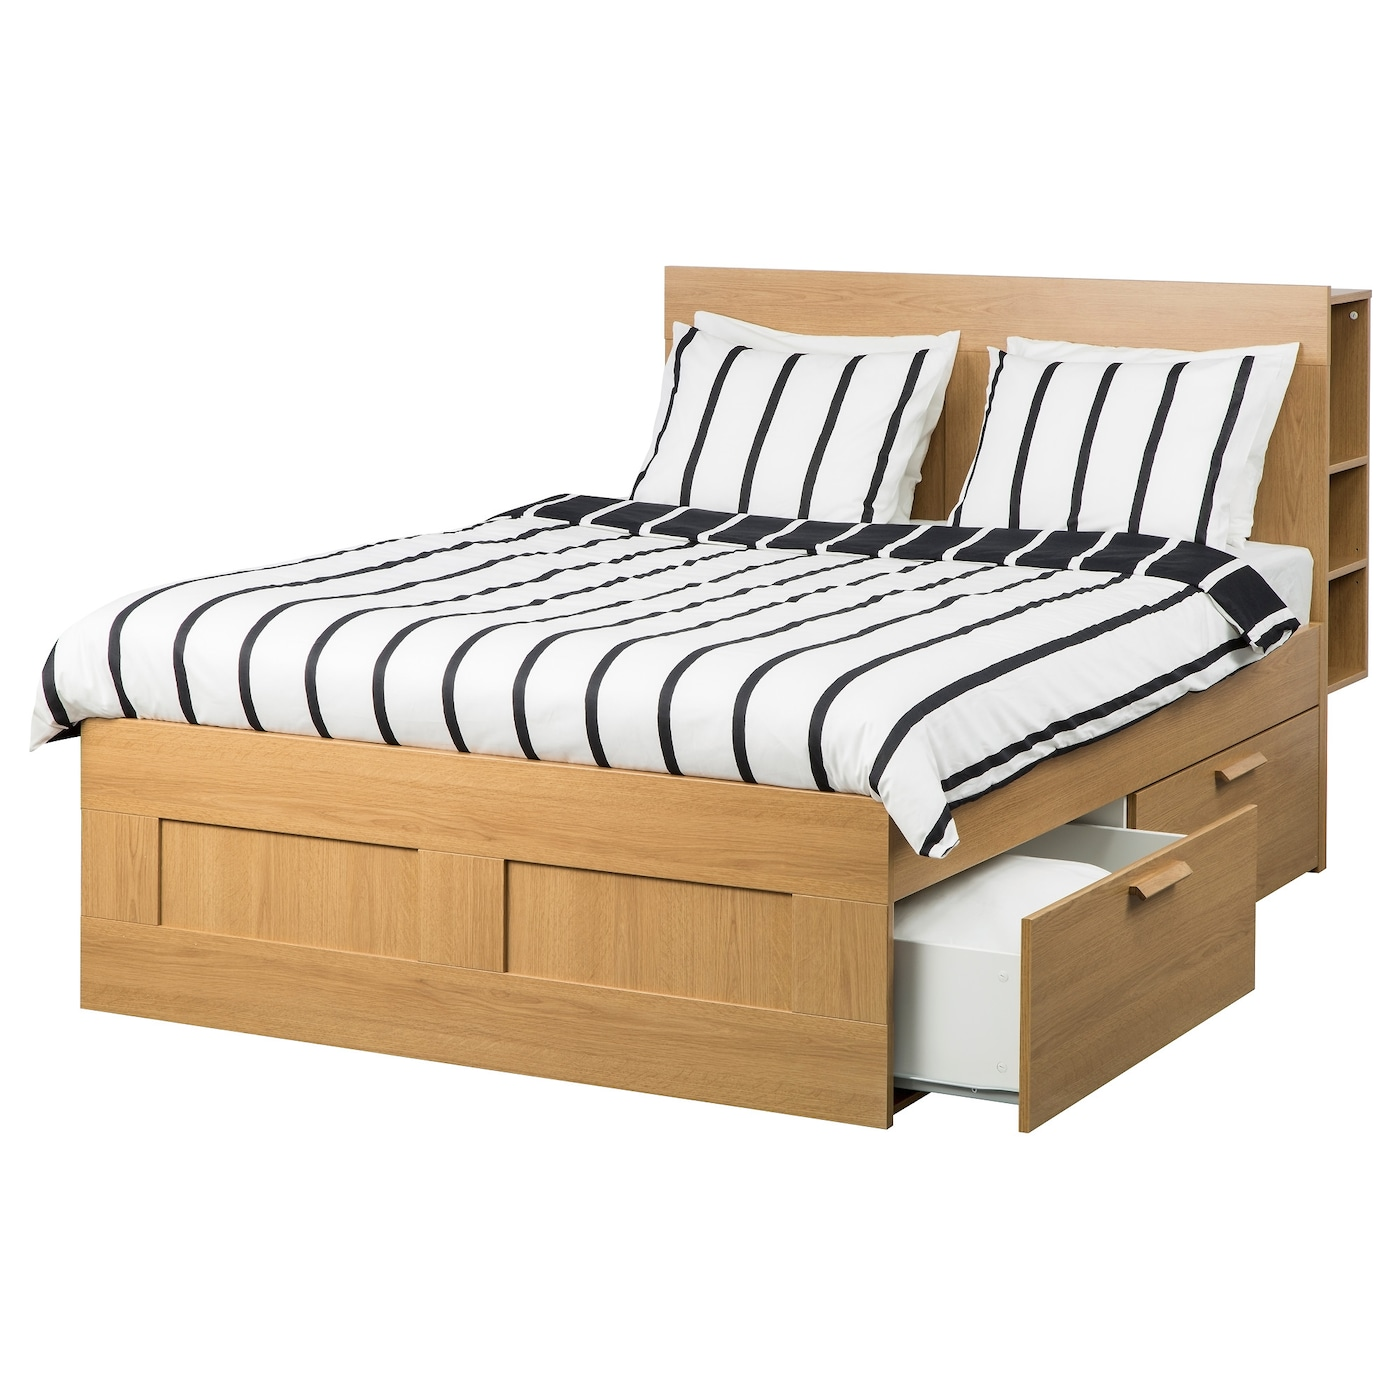 Brimnes bed frame w storage and headboard oak effect lur y for King size bed frame